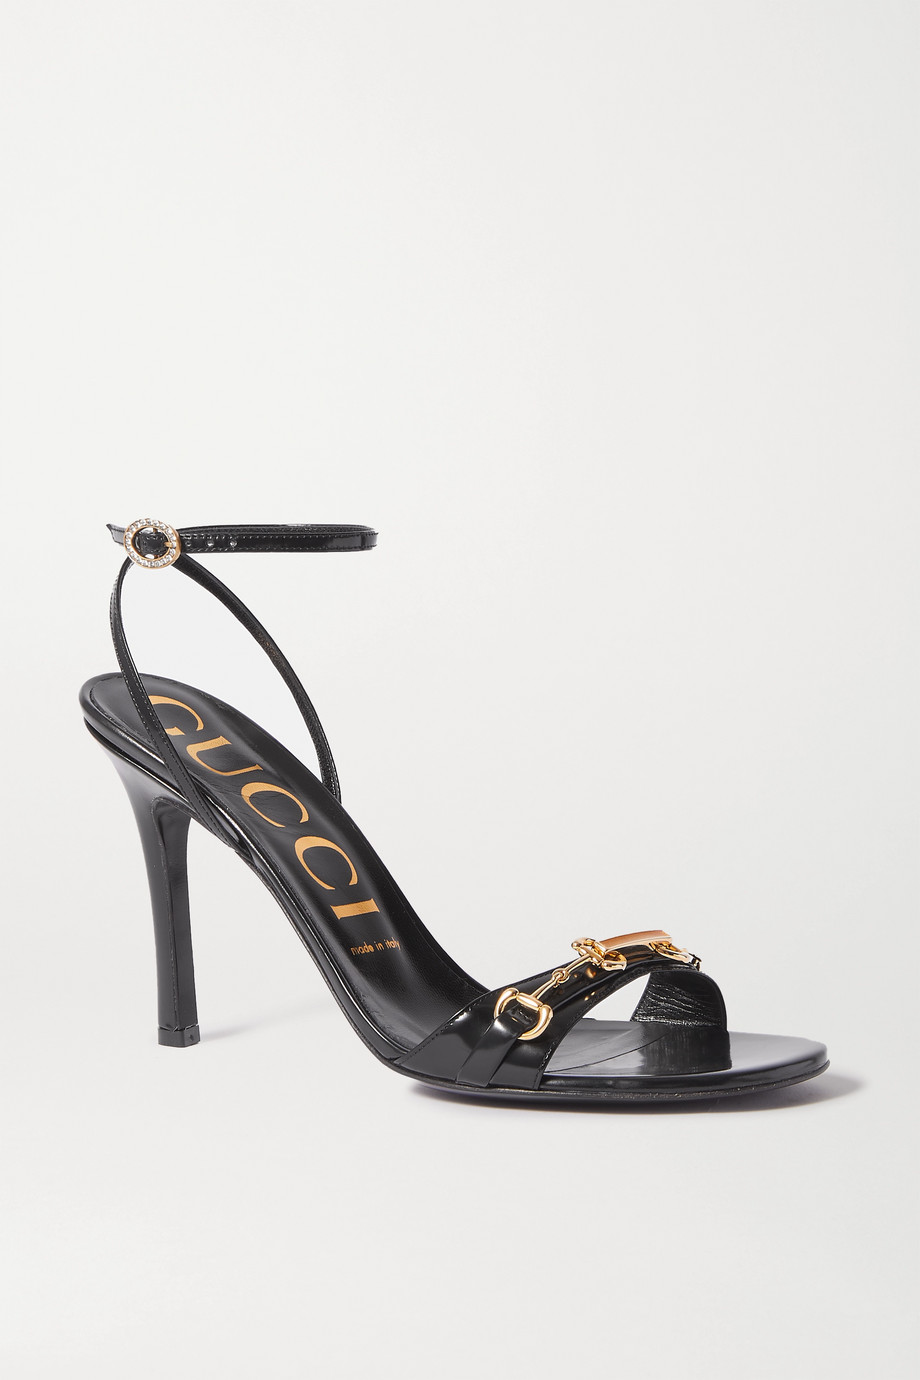 Gucci Moorea horsebit-detailed patent-leather sandals